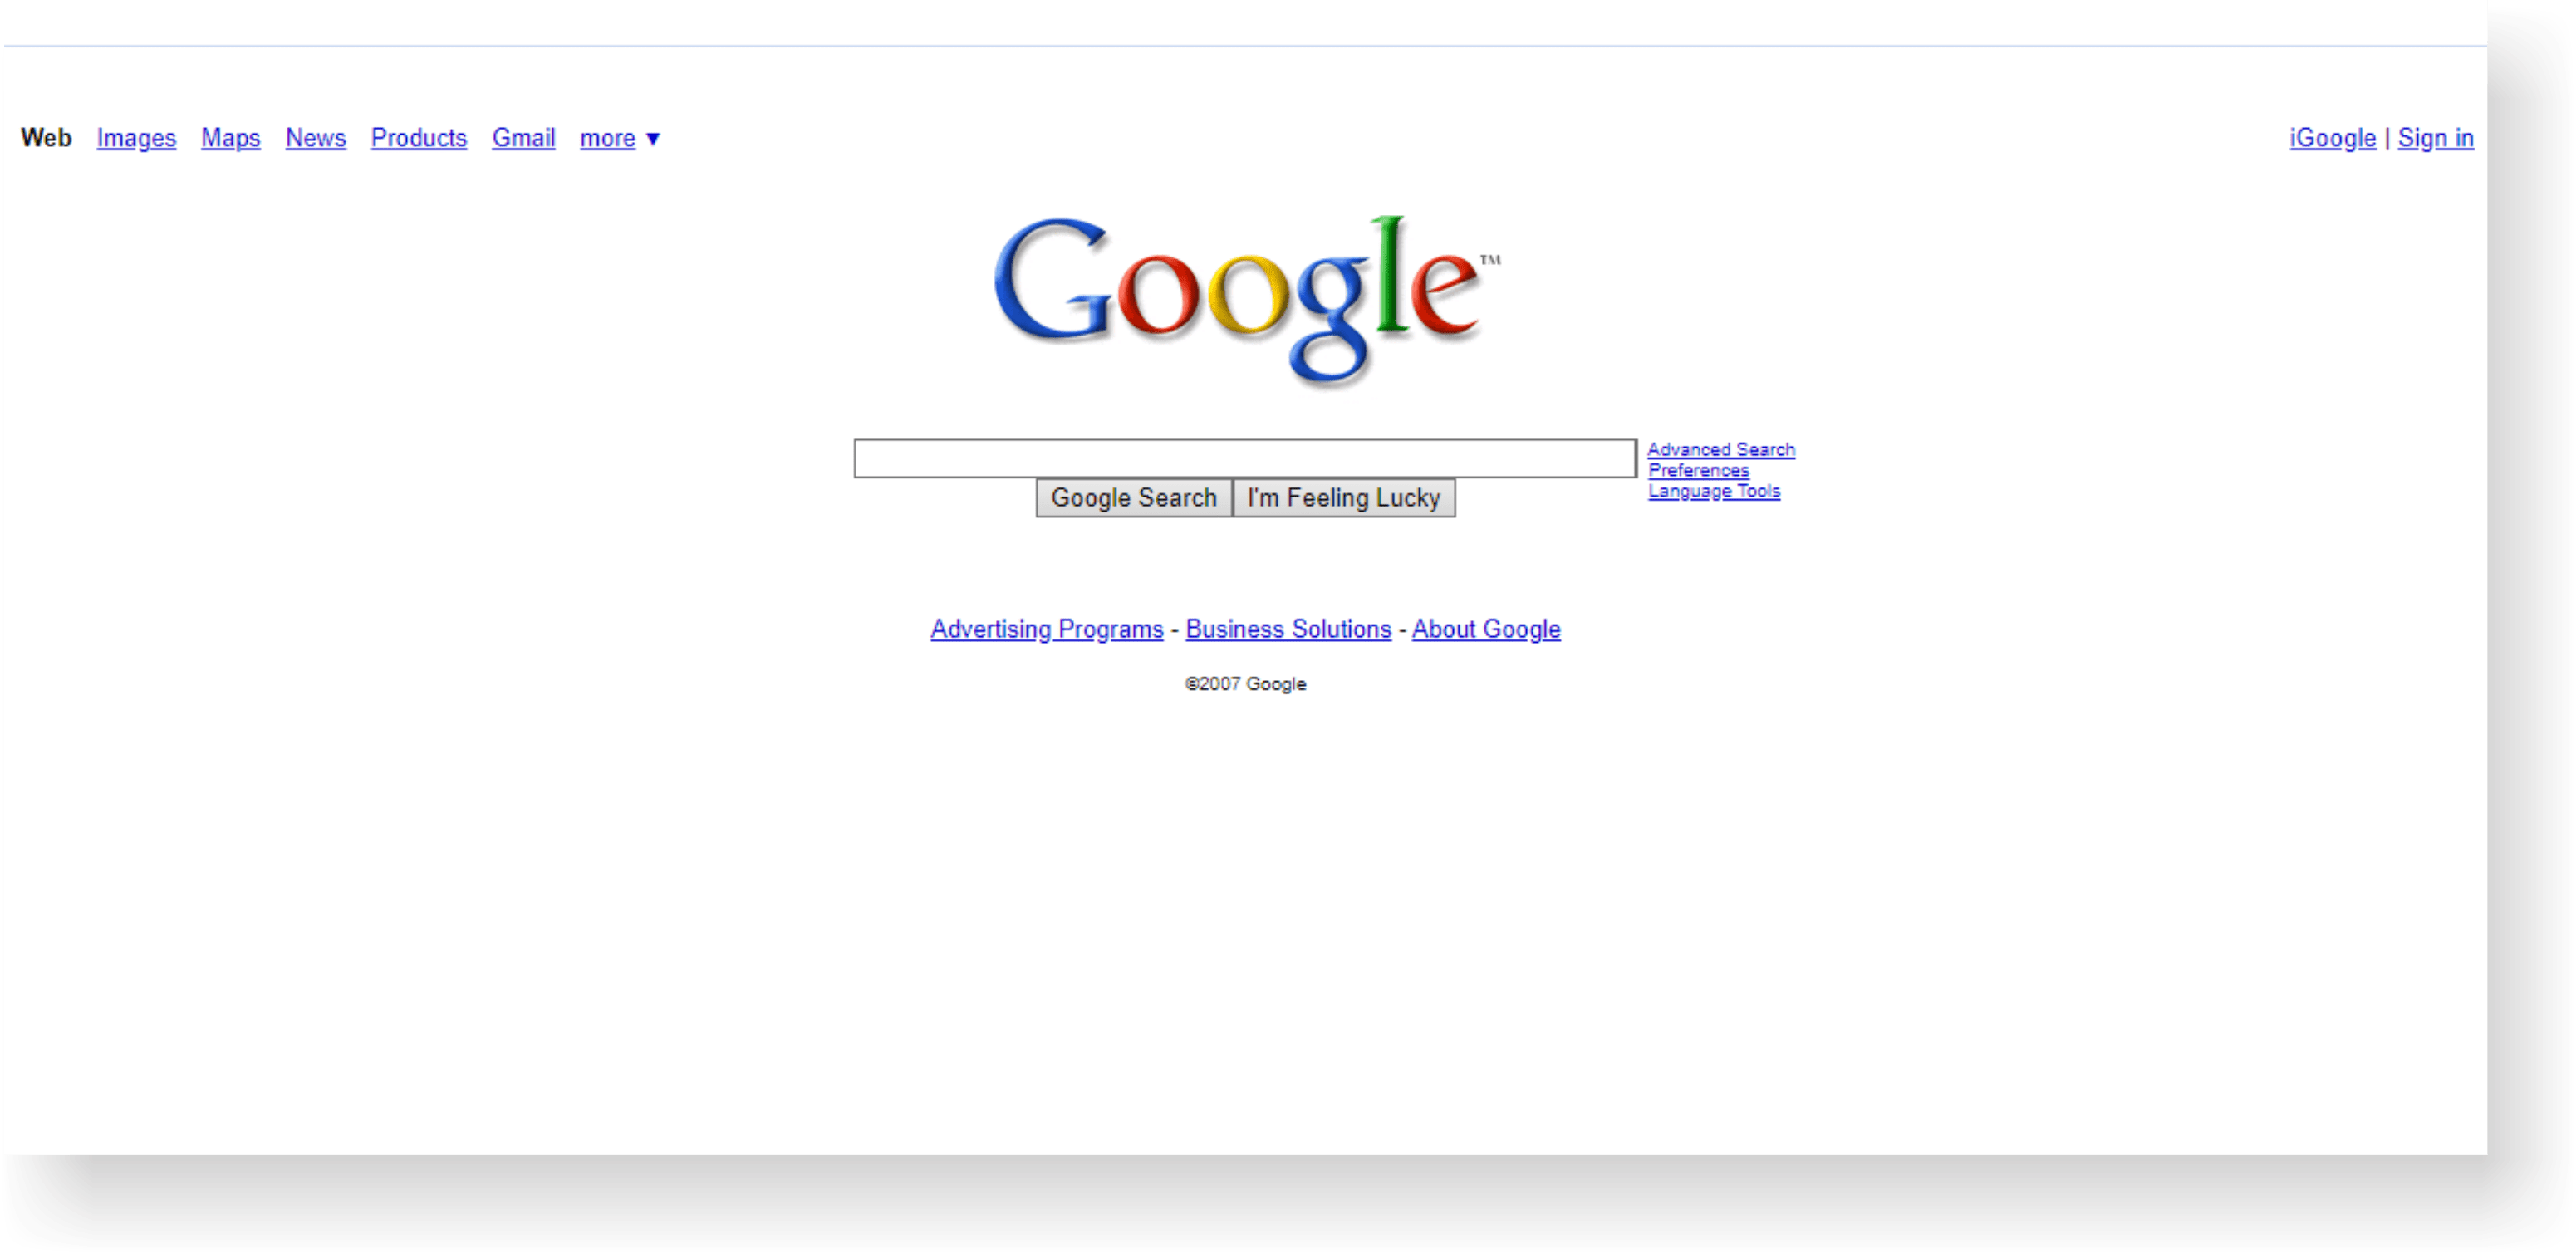 google site history on internet archive 2007